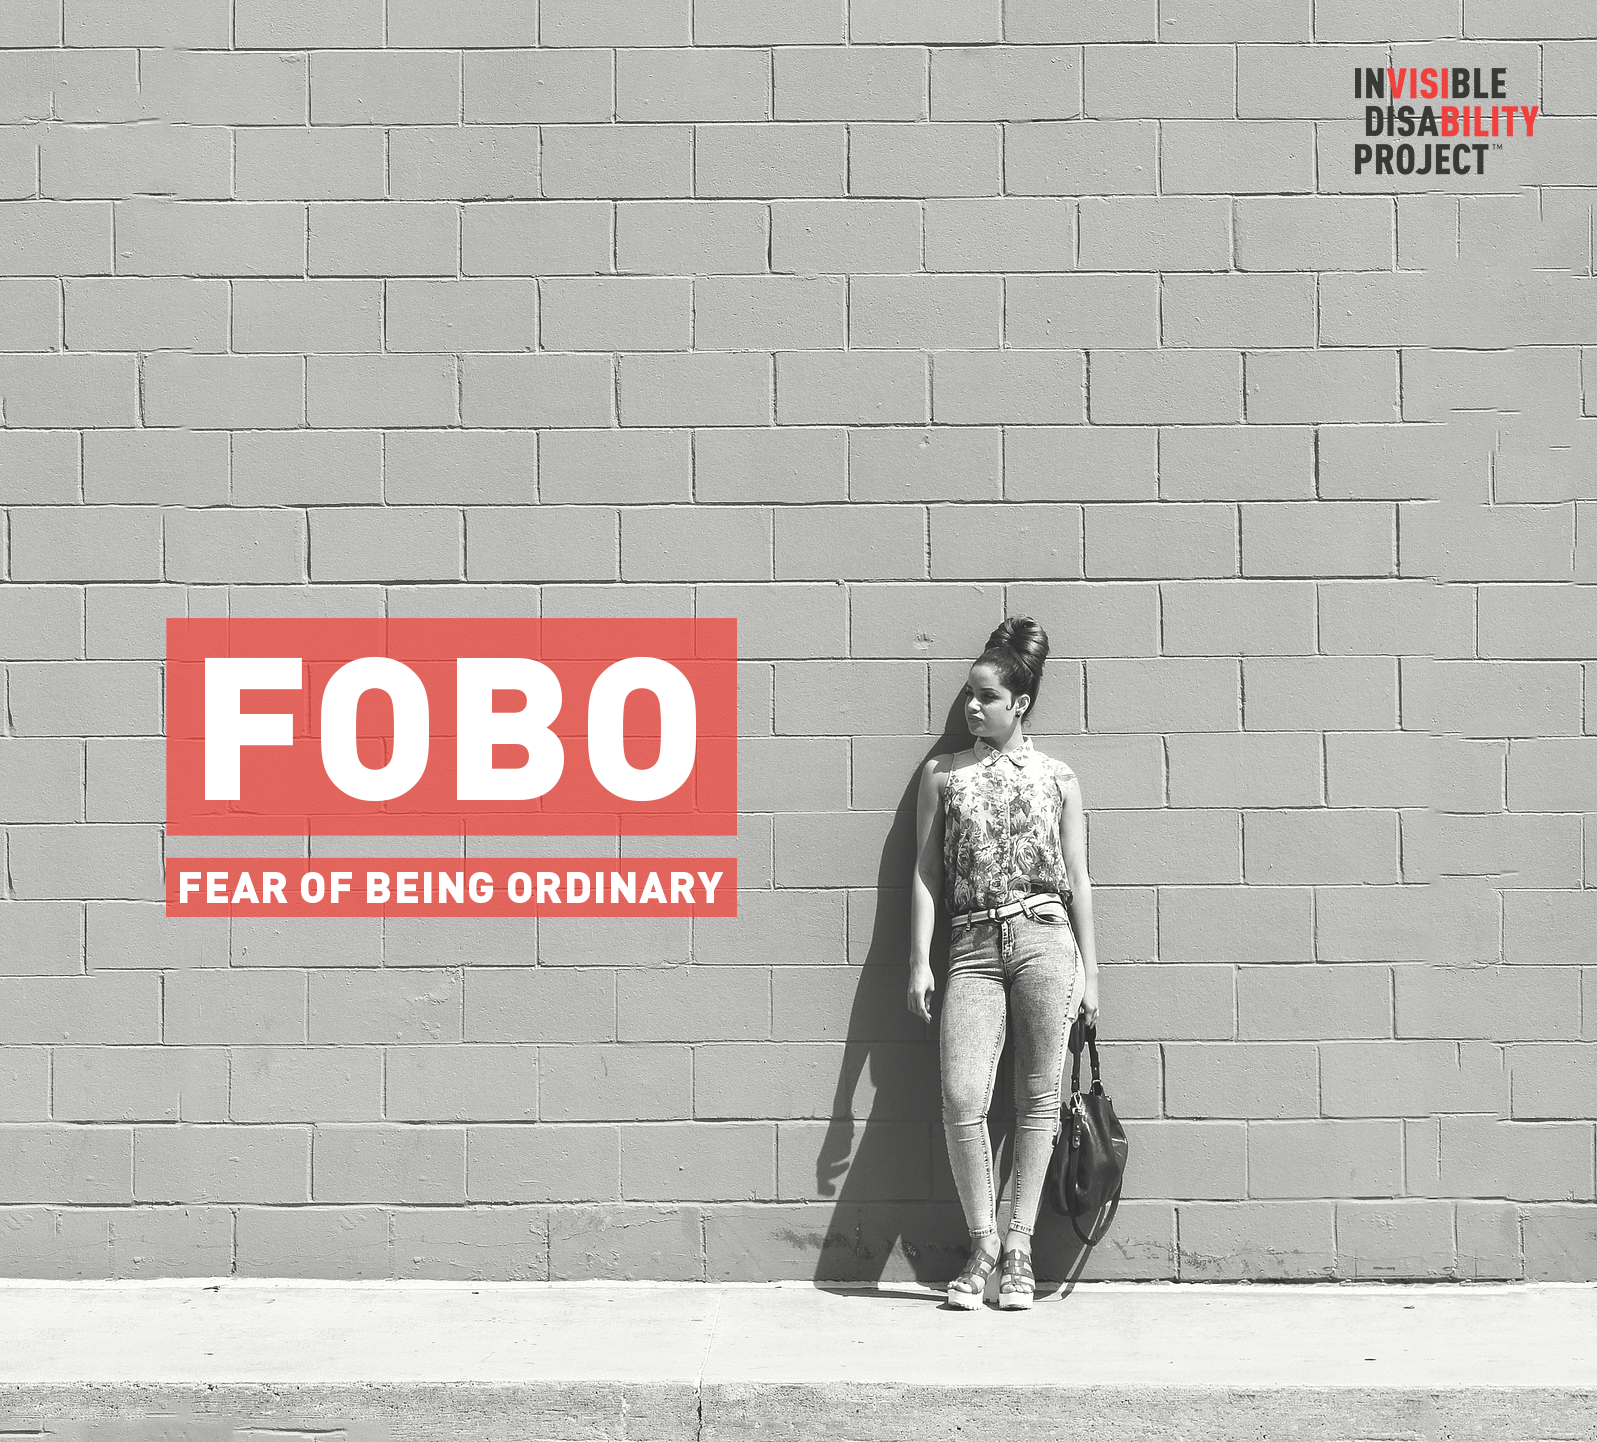 FOBO. Fear of Being Ordinary